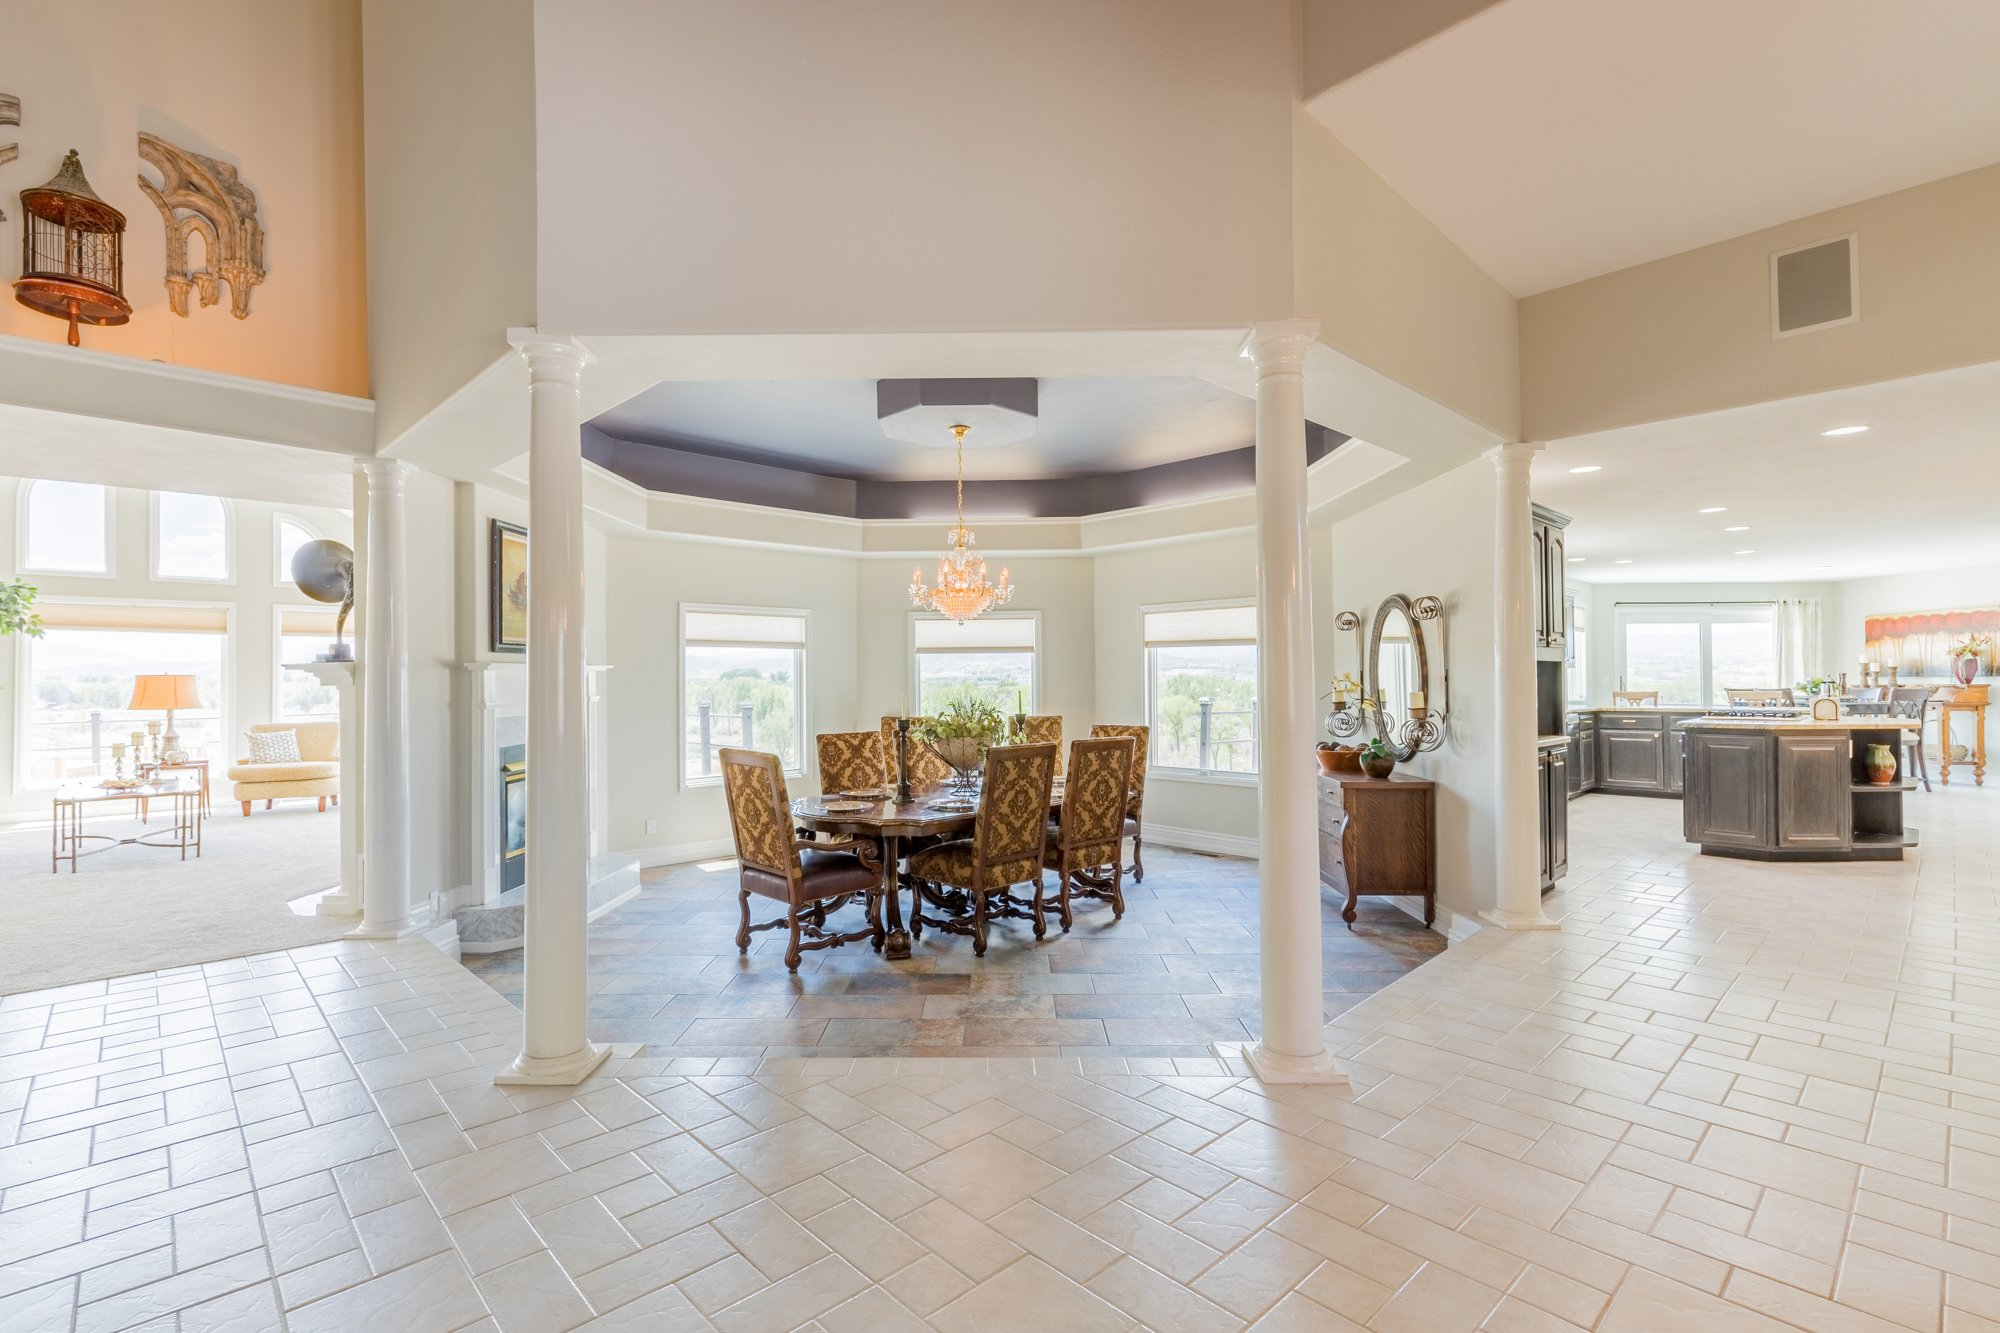 Separate Dining Room - 16955 Wildwood Dr. Montrose, CO 81403 - Atha Team Luxury Real Estate